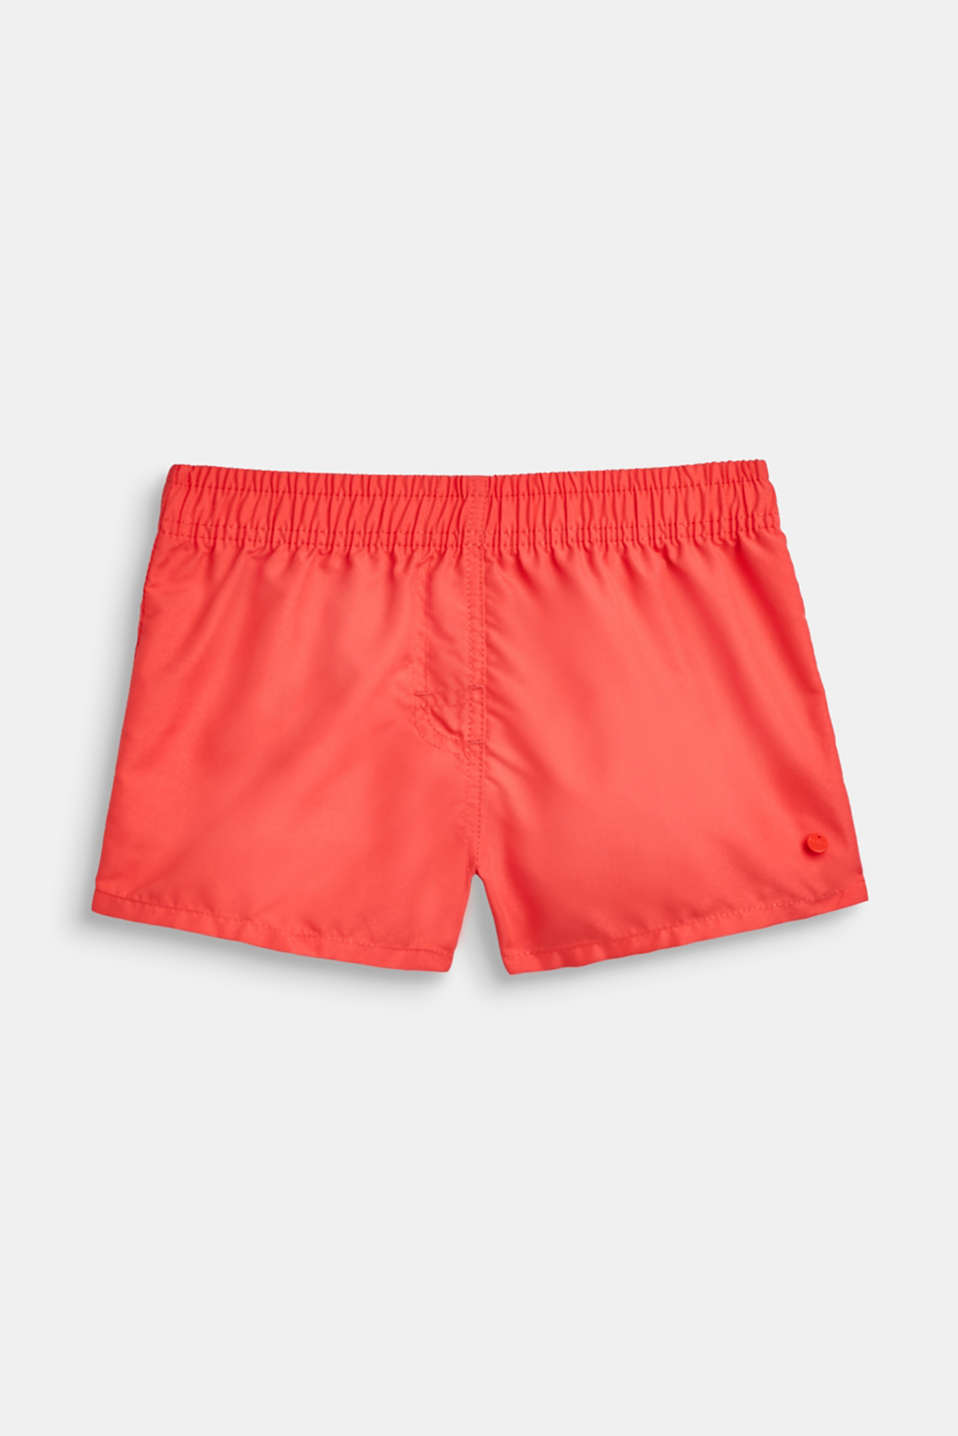 Esprit - Quick-drying swim trunks